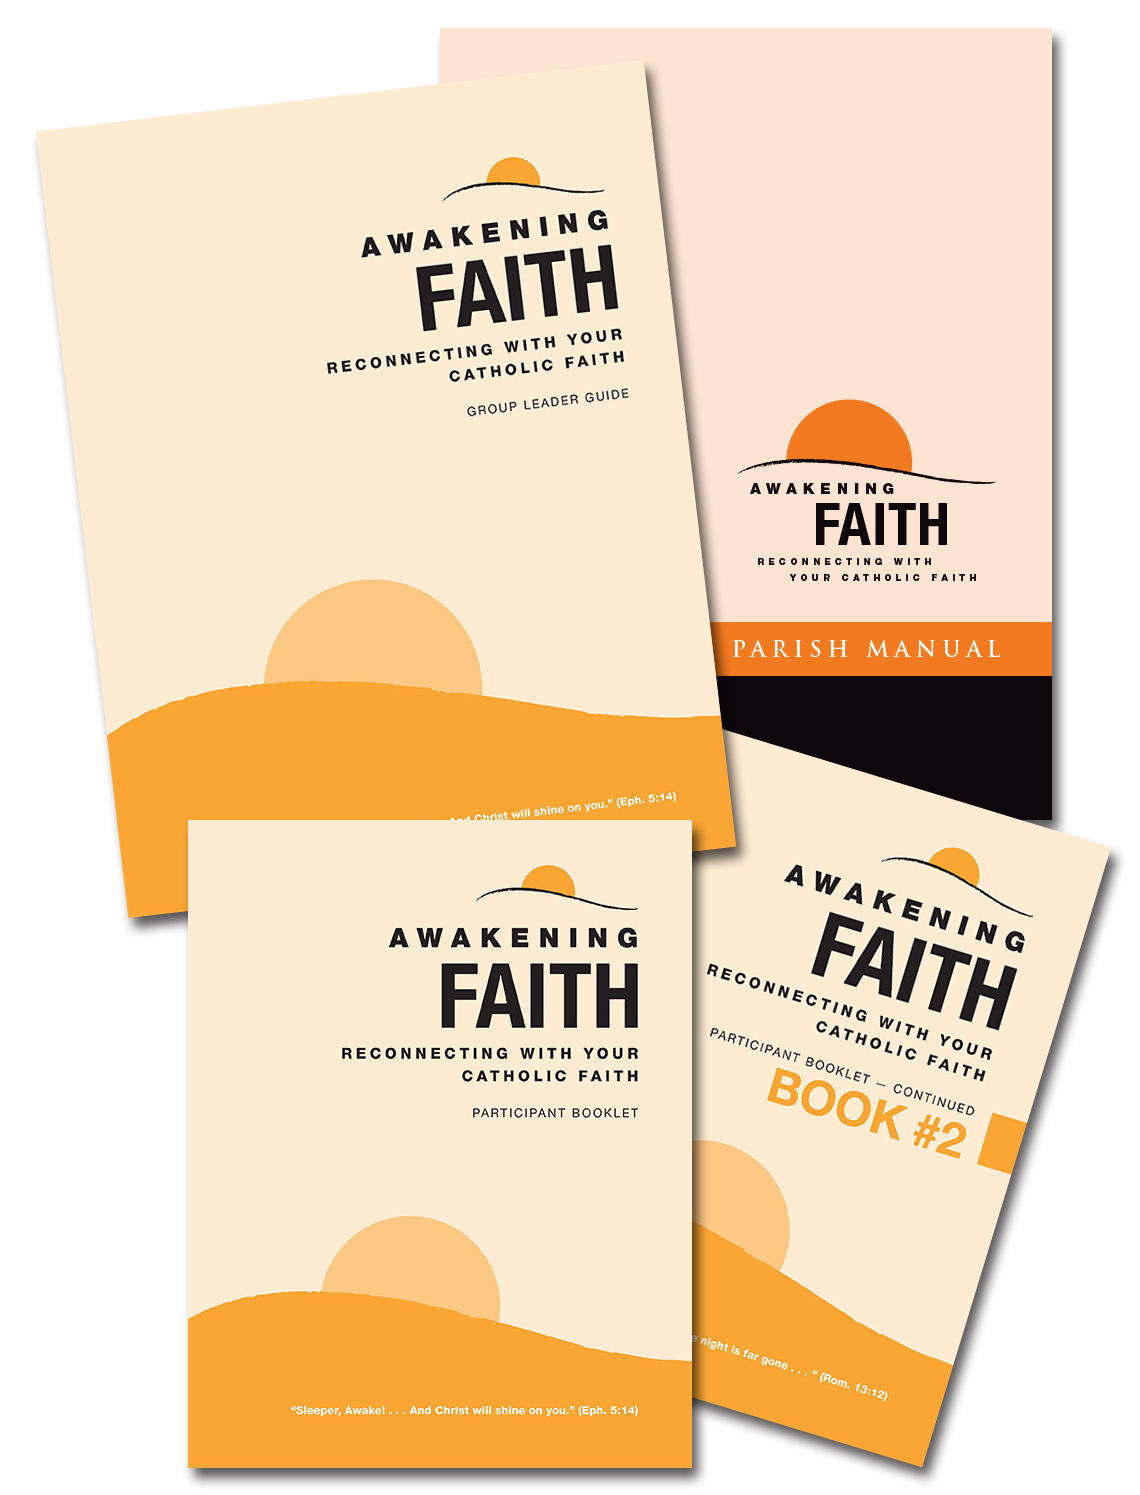 learn more about awakening faith paulist evangelization ministries a parish can order the awakening faith parish preview pack which contains the parish manual cd a group leader guide and a participant booklet